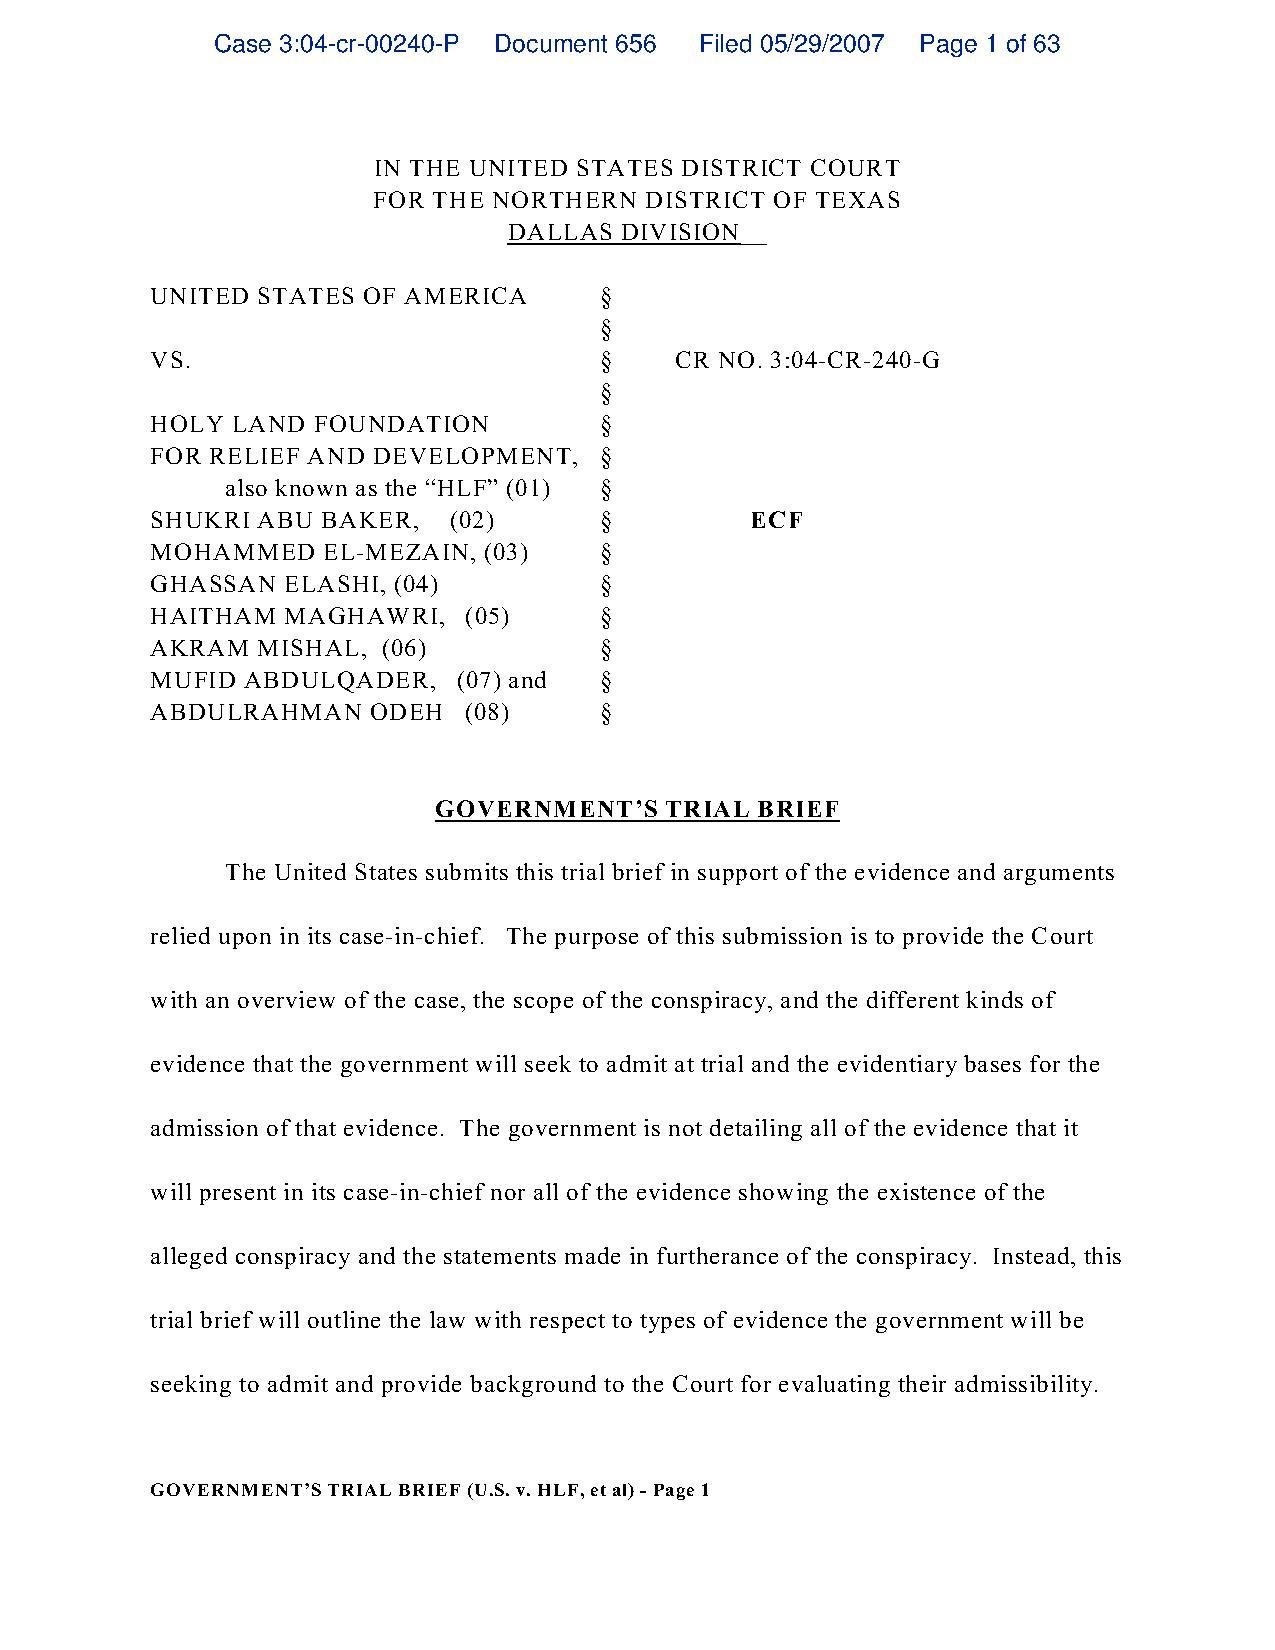 Fileprosecutions Trial Brief In The Holy Land Foundationpdf